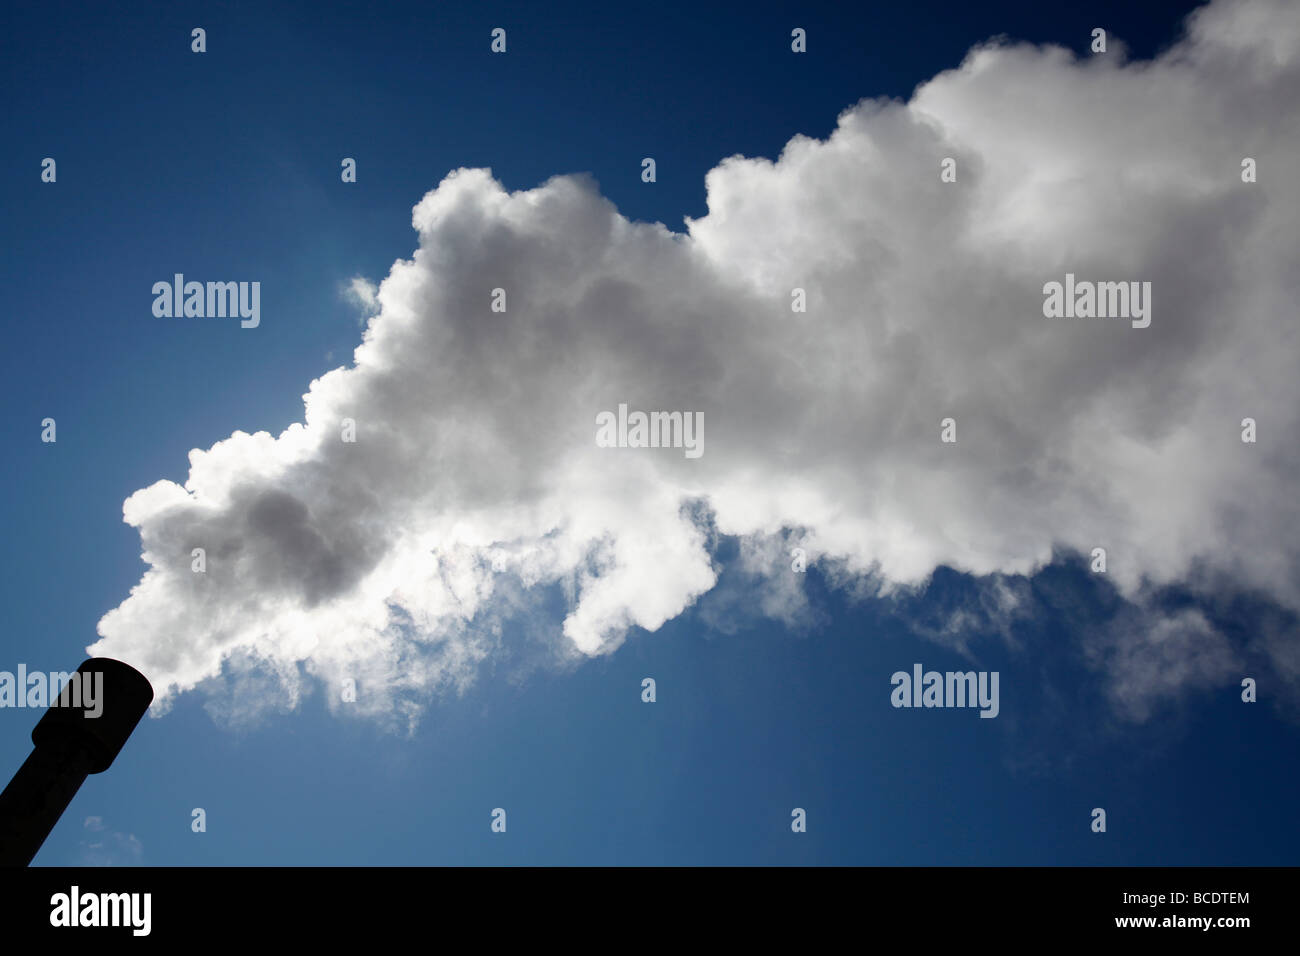 Steam vents from Bjarnarflag geothermal power station, Mývatn, Iceland - Stock Image